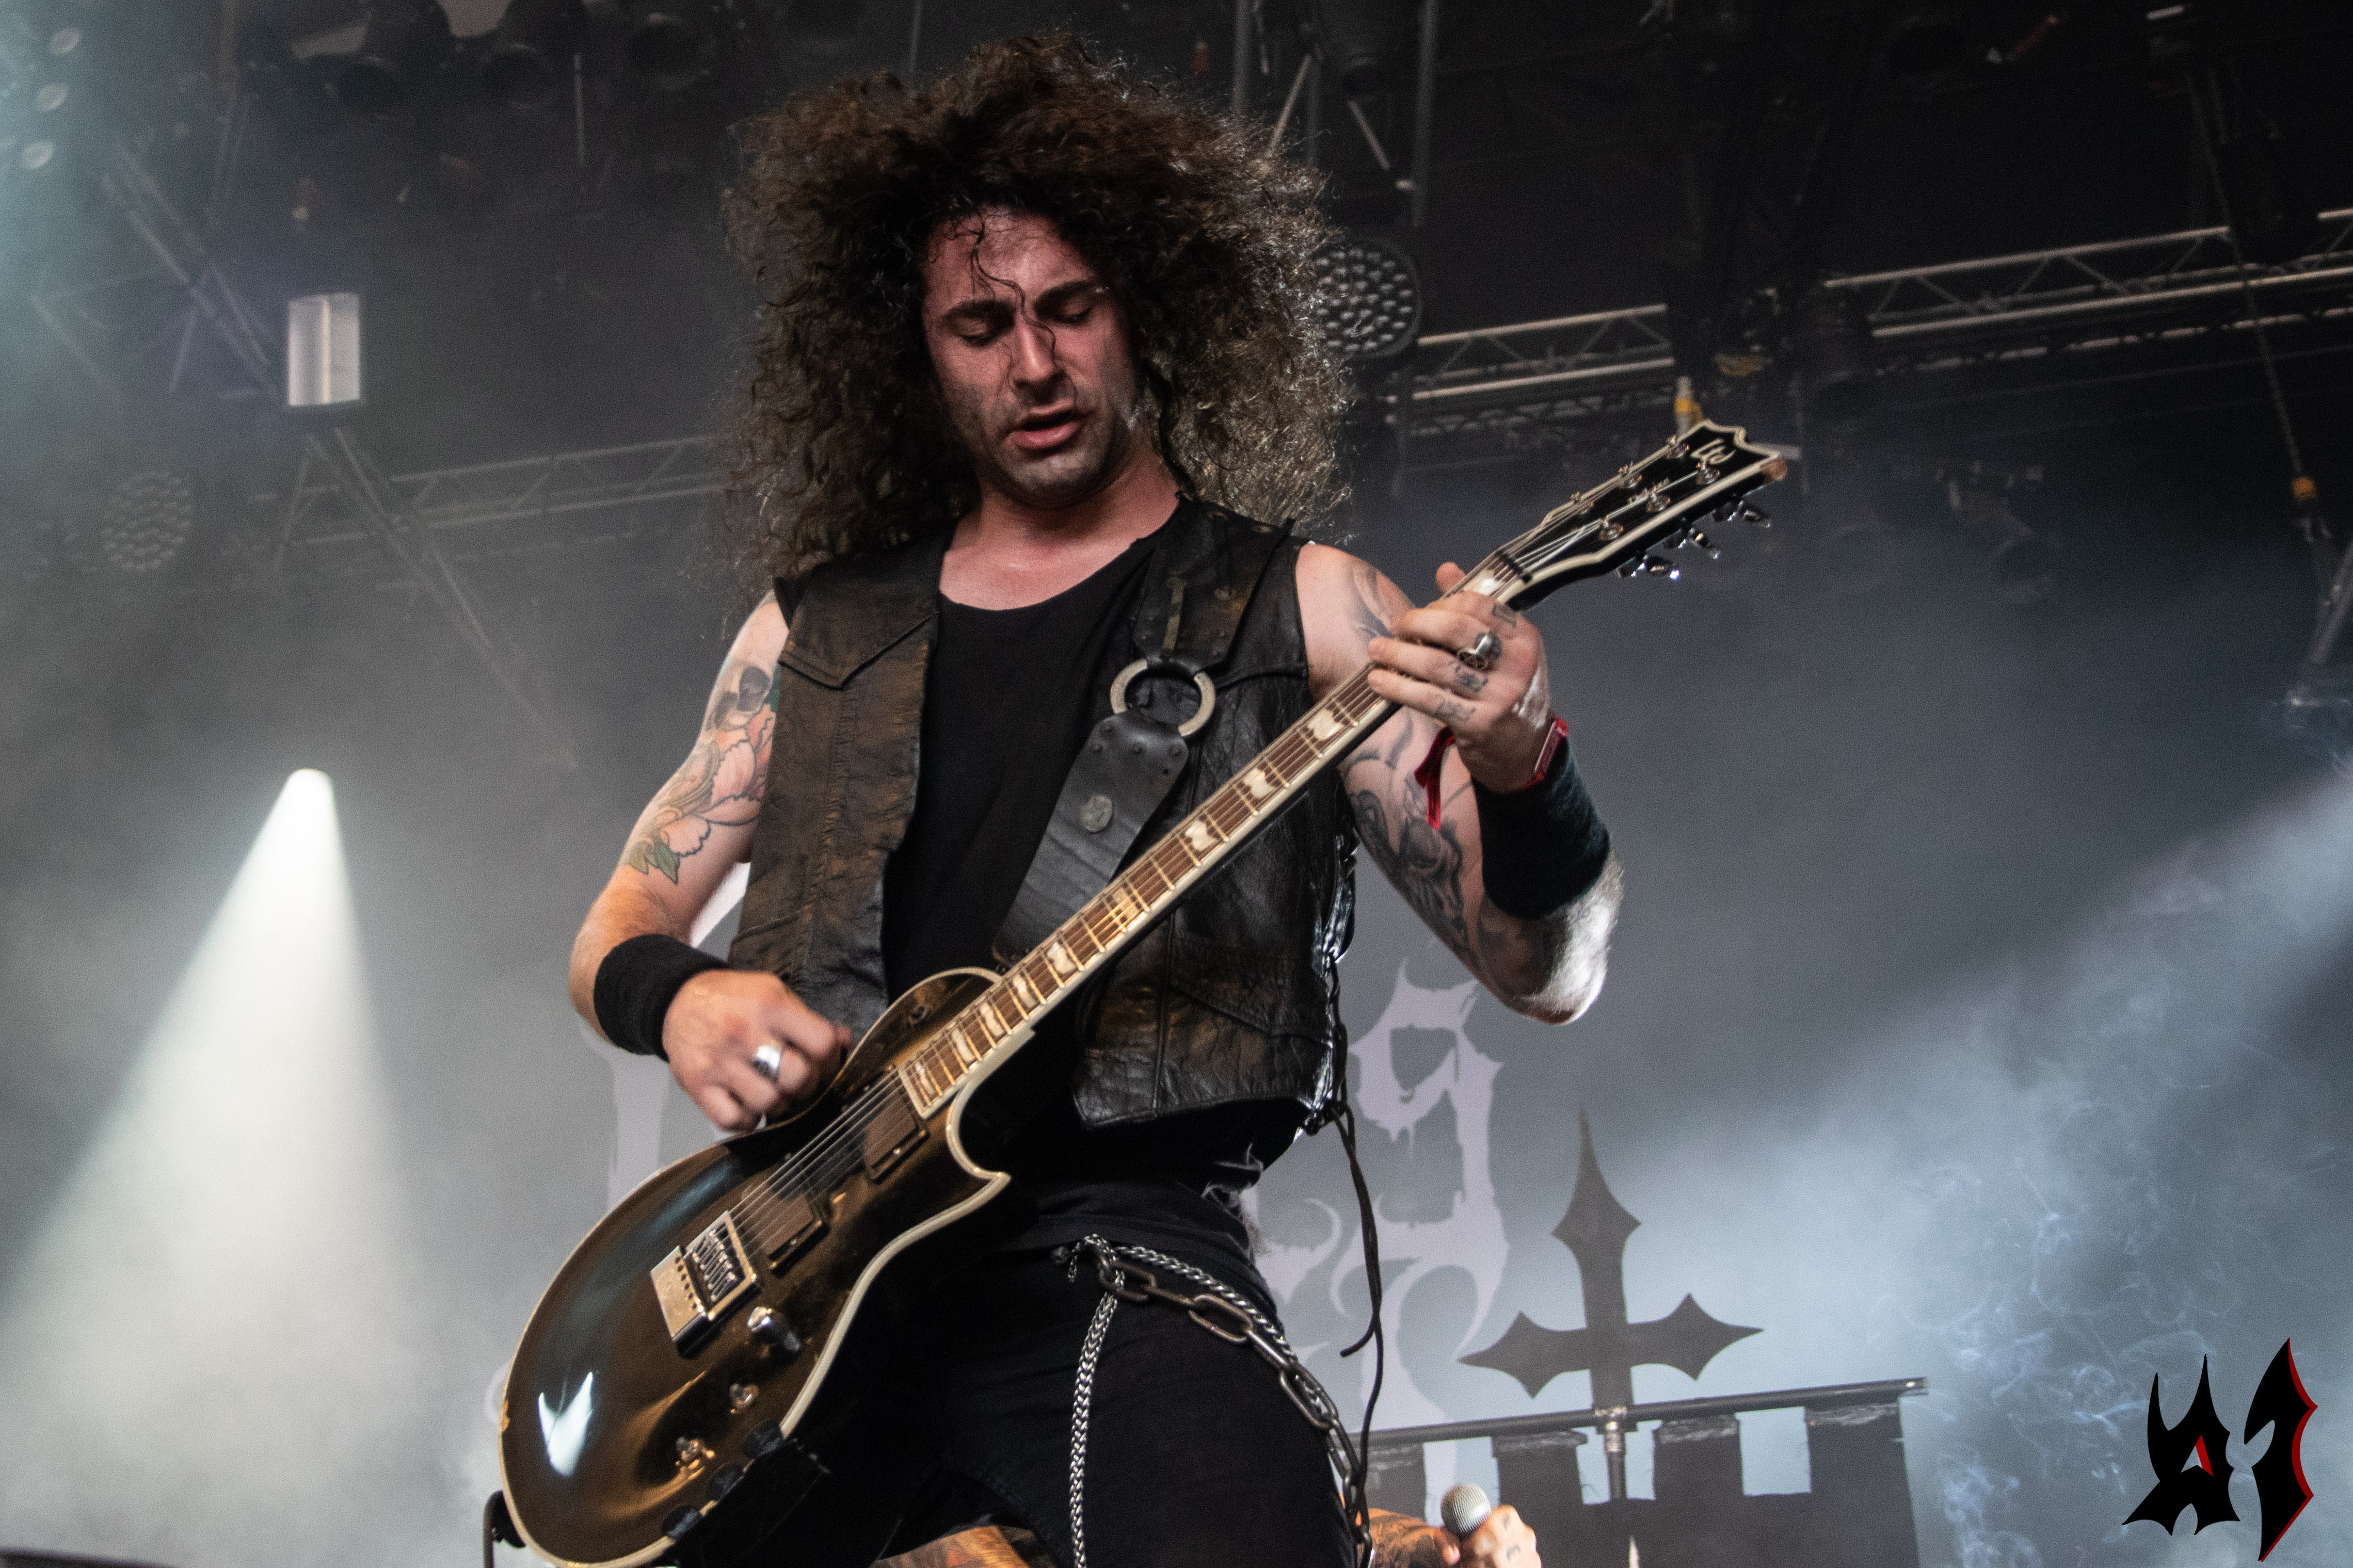 Hellfest - Lucifer's Child - 7